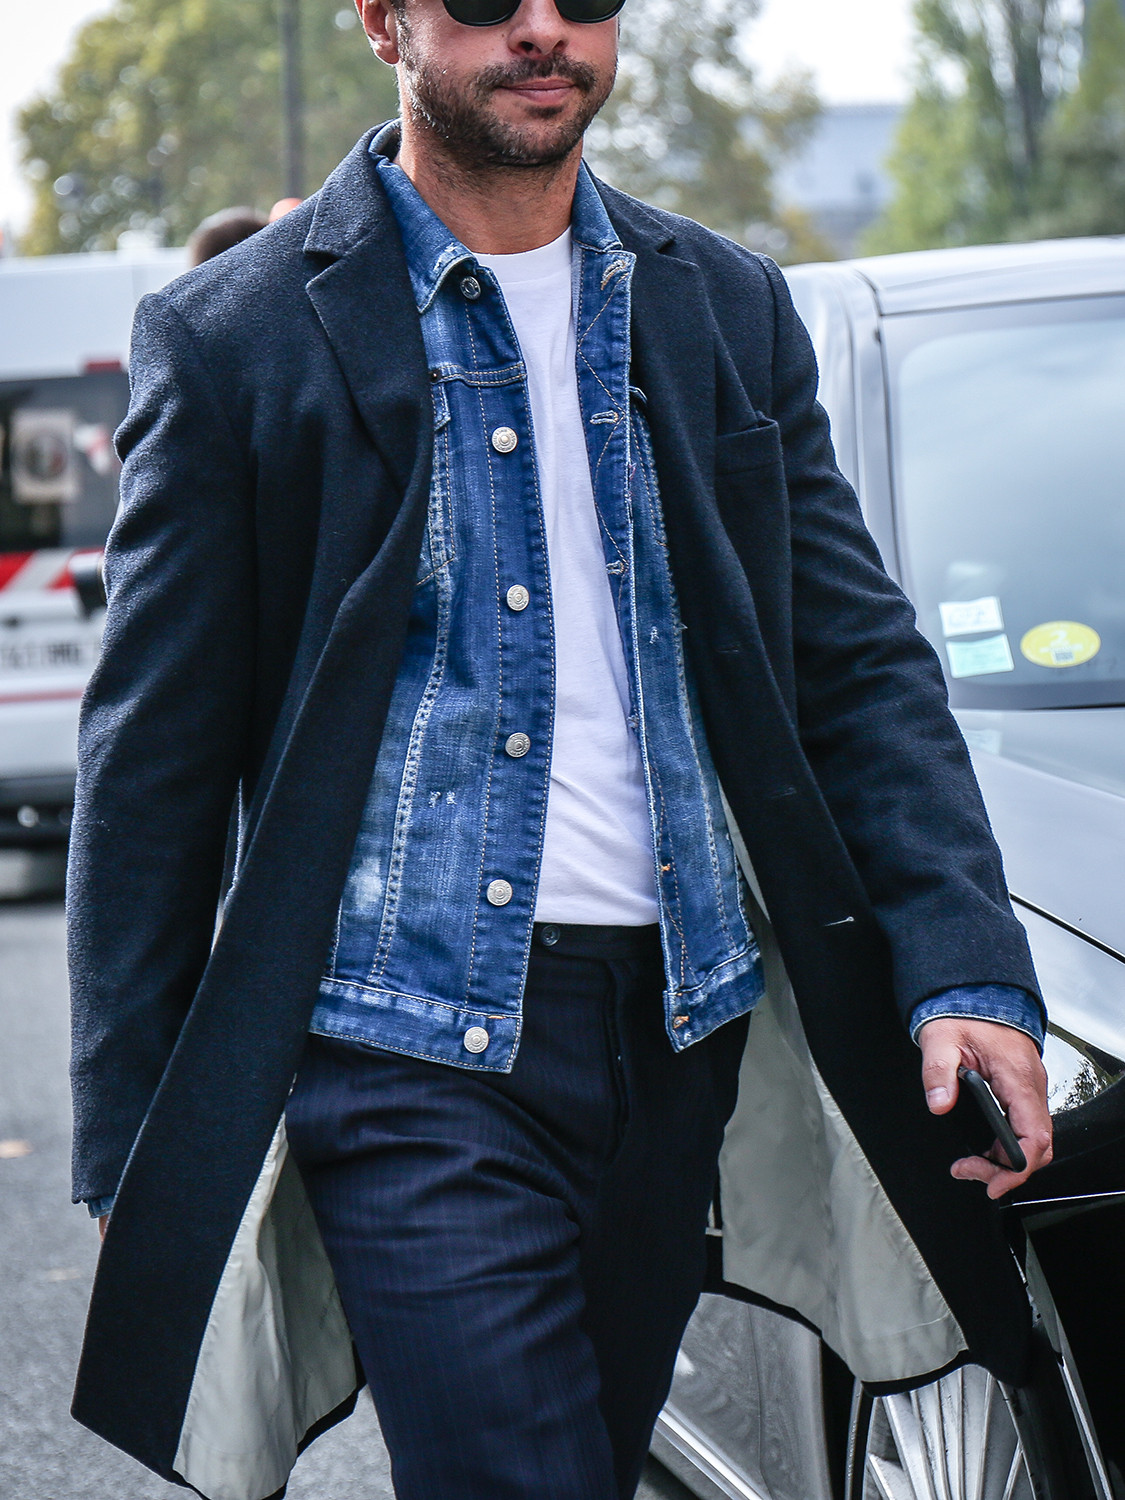 Men's outfit idea for 2021 with navy single-breasted overcoat, blue denim jacket, white crew neck t-shirt, navy formal trousers. Suitable for spring, autumn and winter.